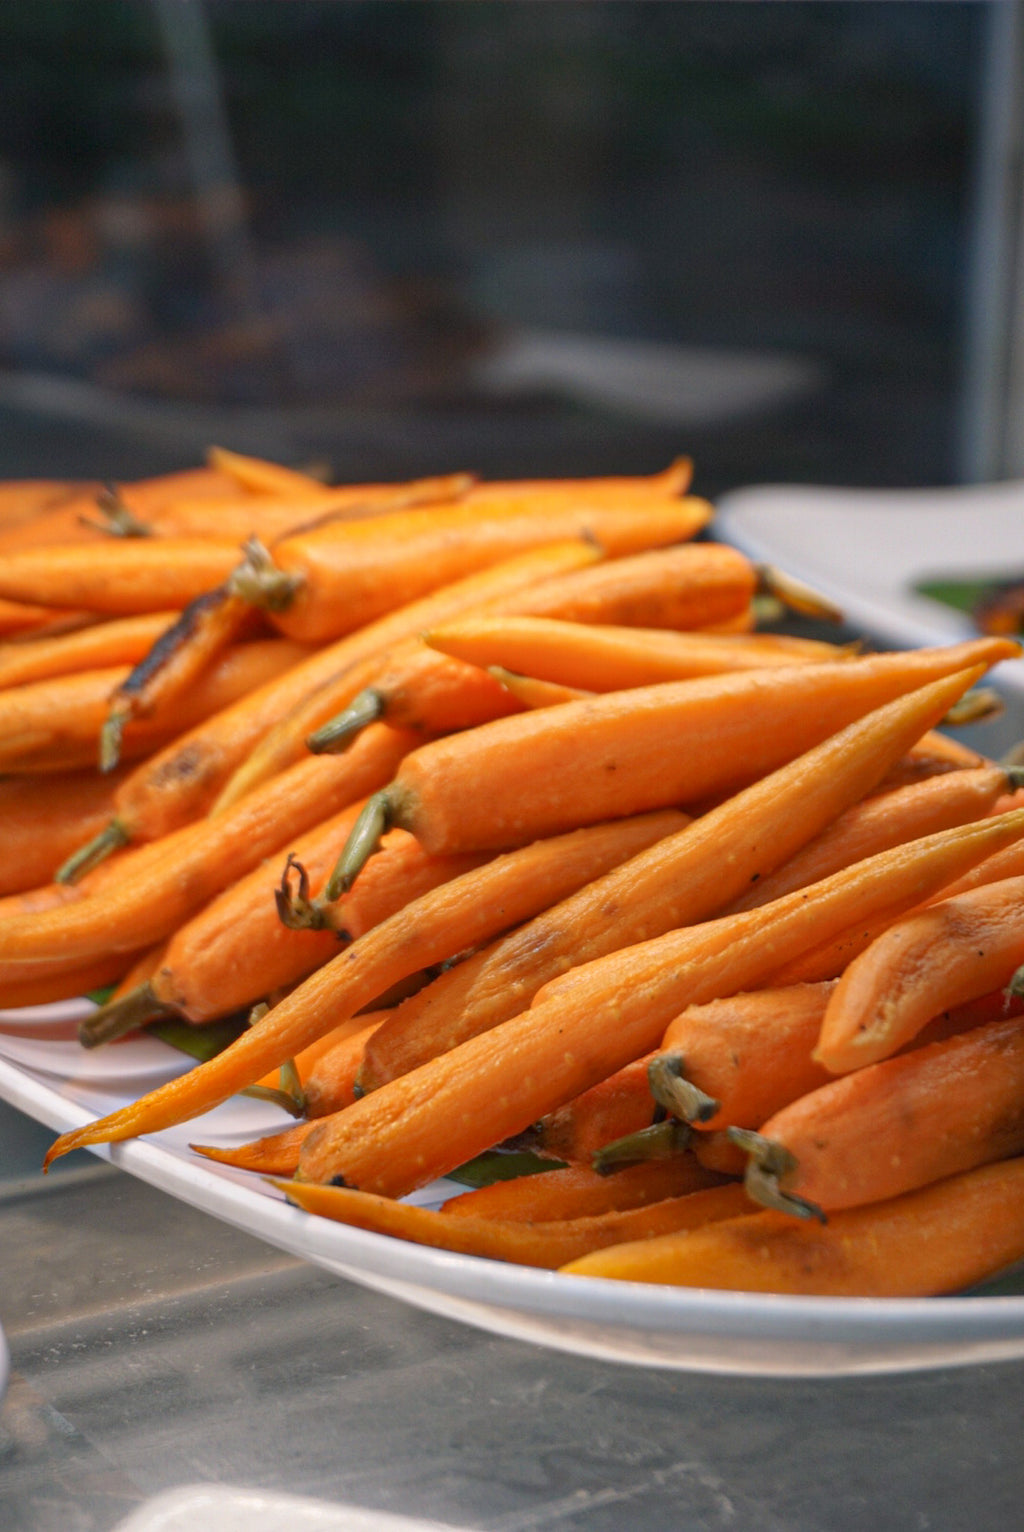 Roasted Baby Carrots - Delivery